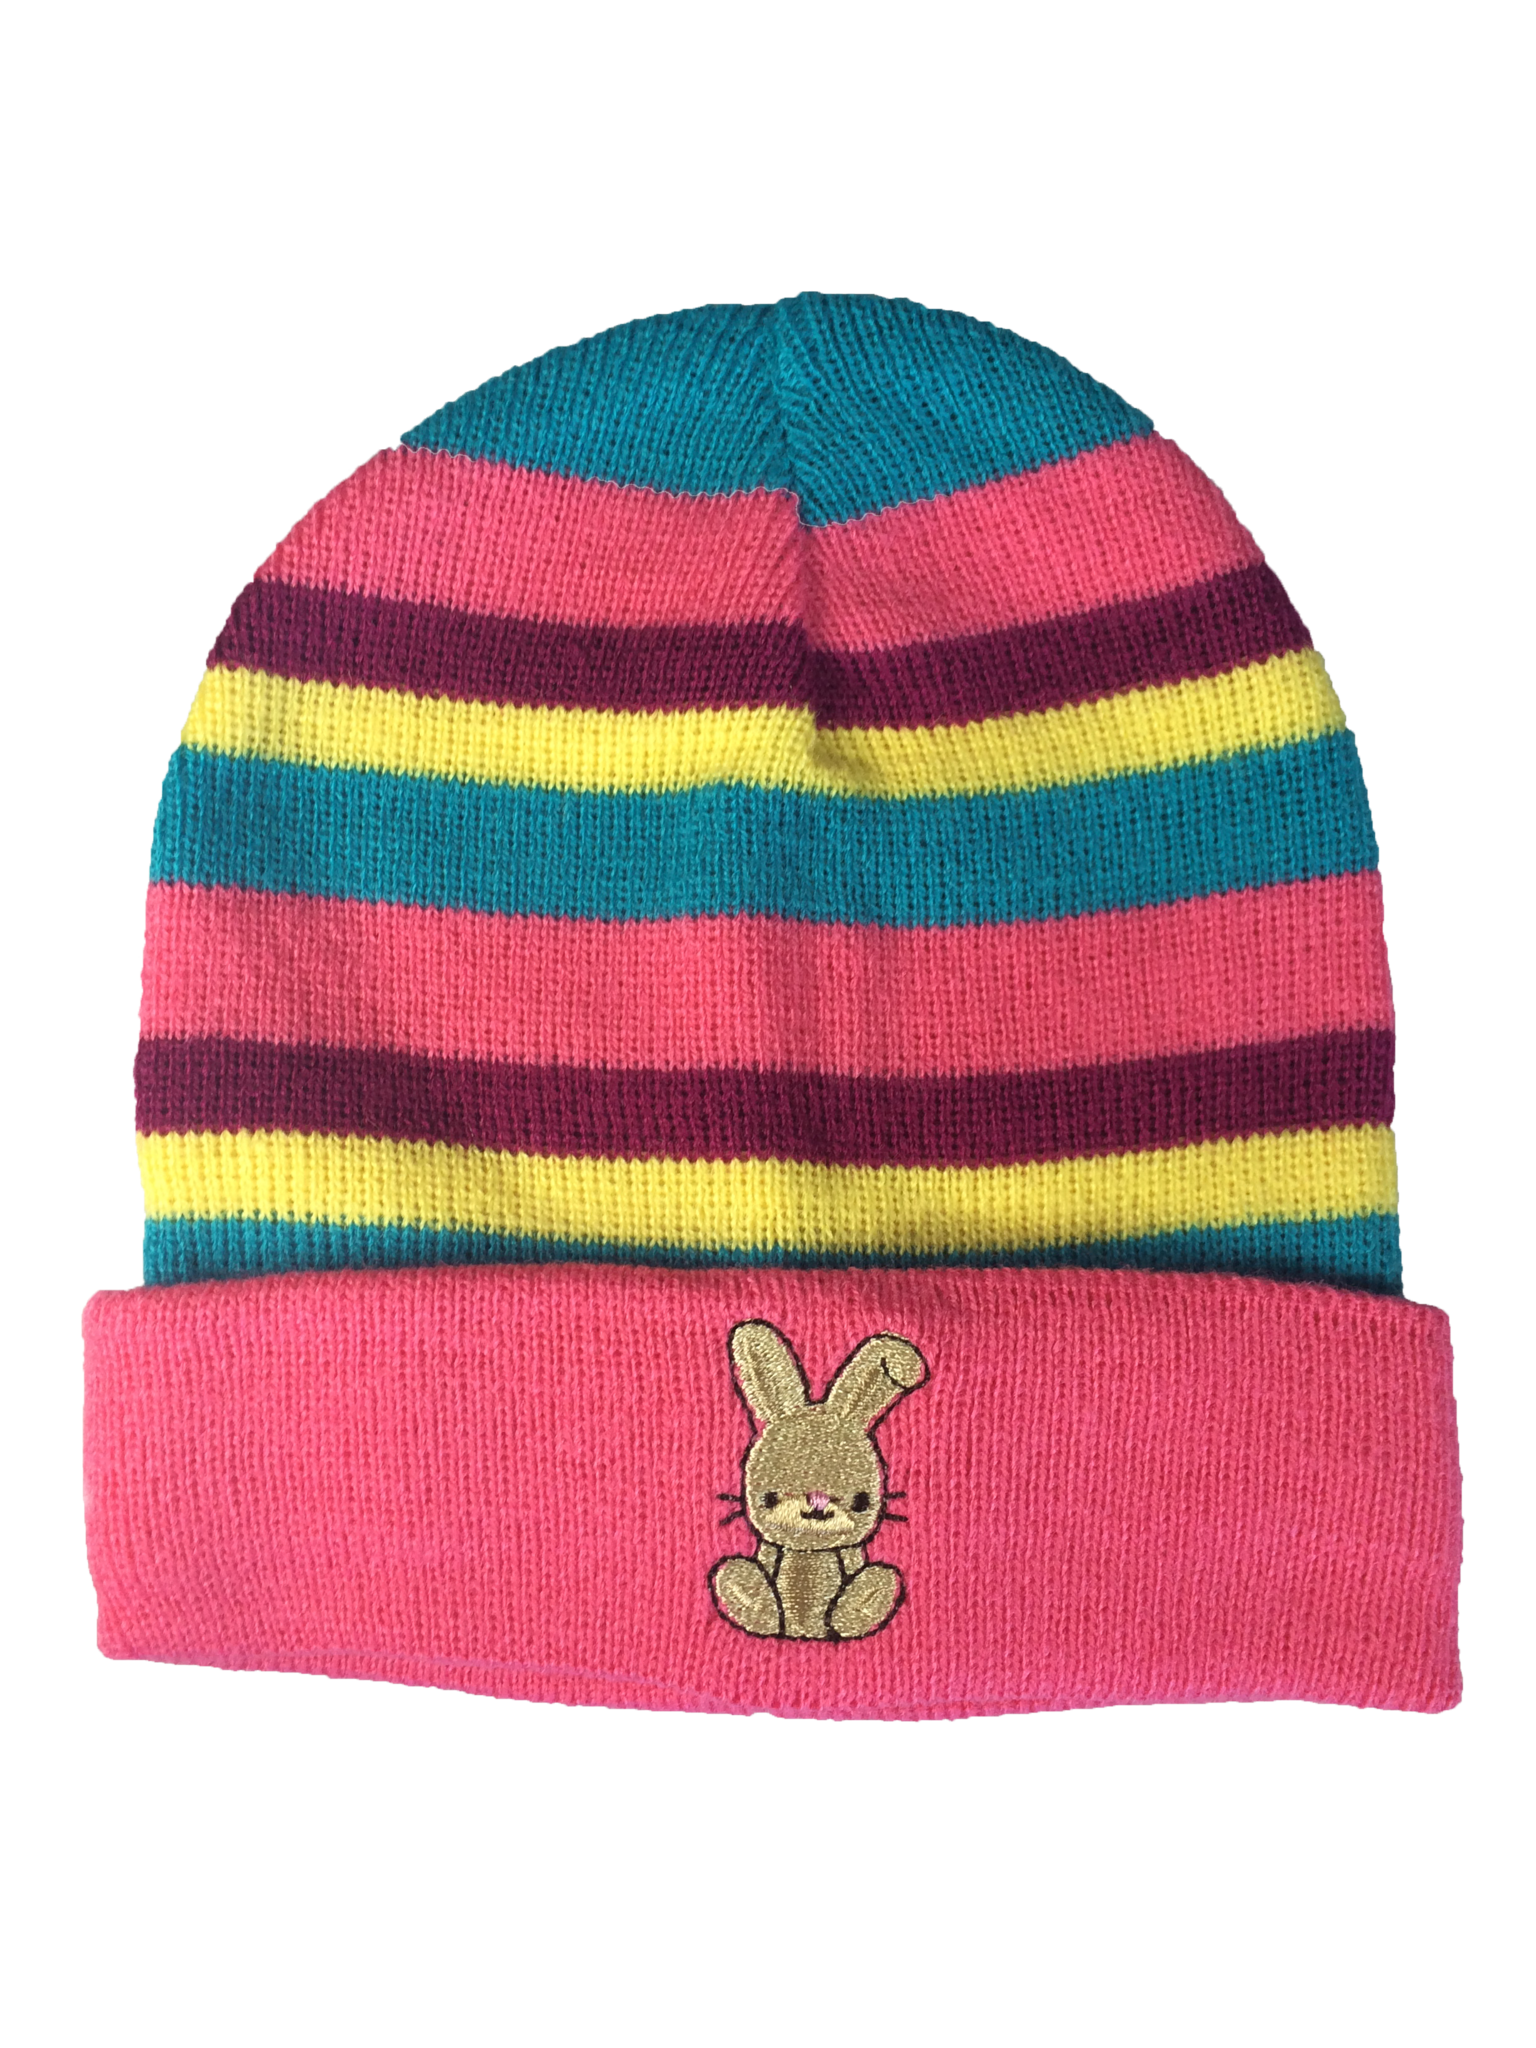 c5849d01811 Winter-Hats Infant   Toddler Striped Cuff Knit Hats